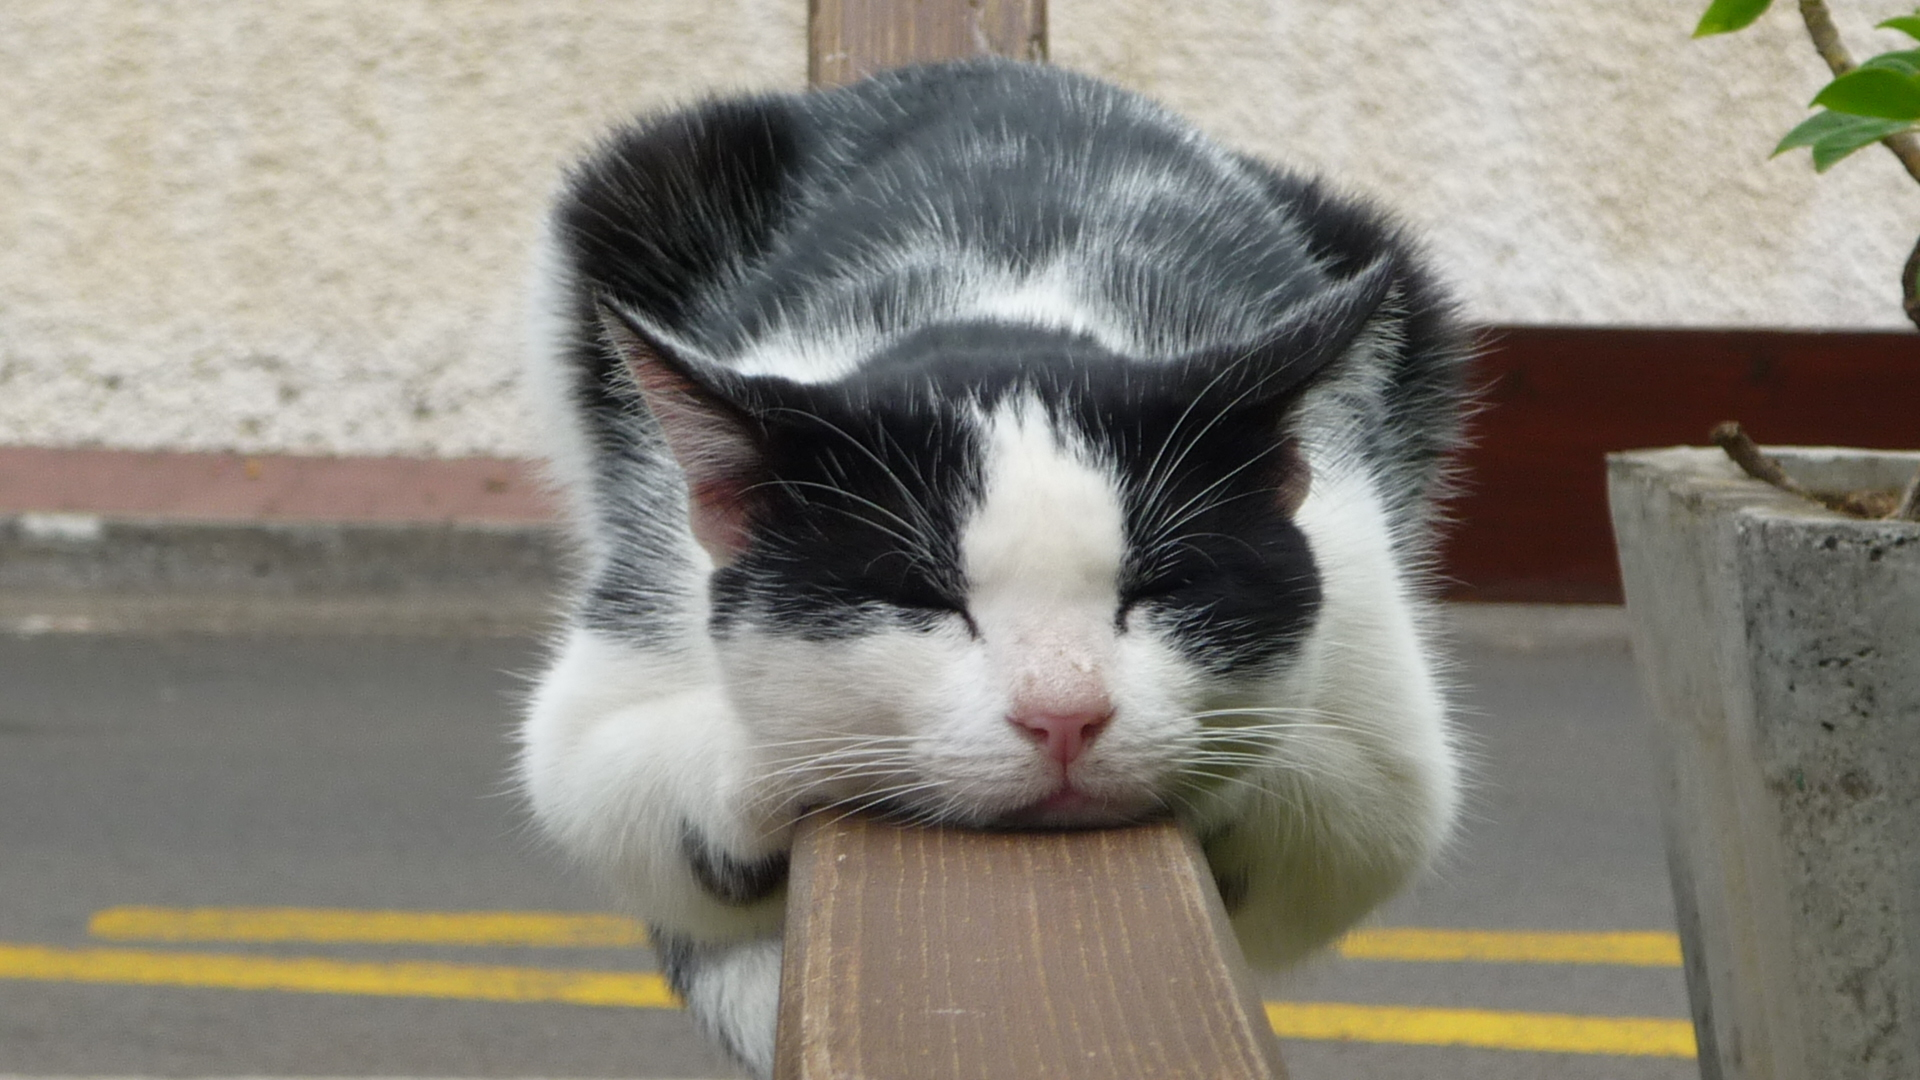 Funny Lazy Cat Pc HD Wallpaper, Background Image - AmazingPict.com